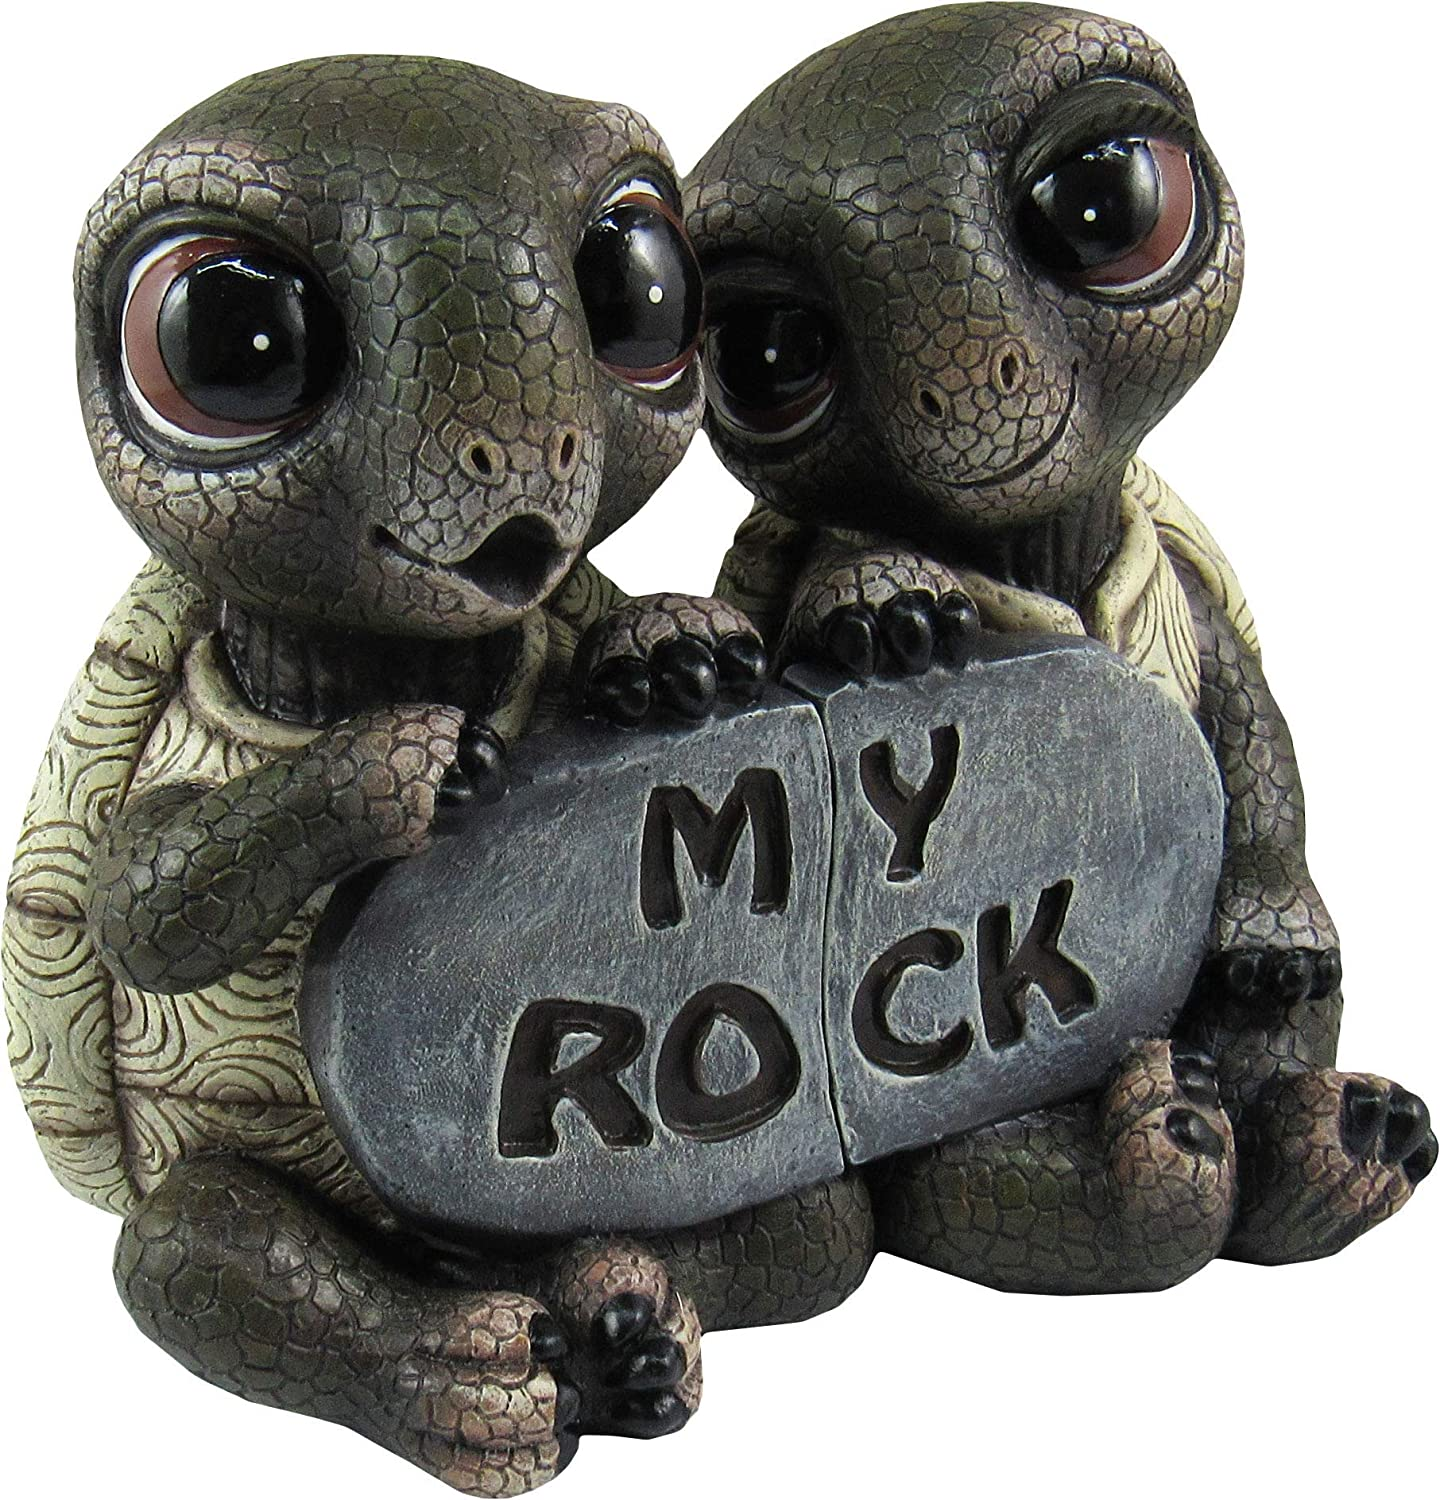 DWK - Rock Solid Love - Adorable Romantic Turtle Couple Two-Piece Figurine Best Friends Lovers Collectible Office Desk Statue Home Decor Patio Garden Accent, 5.5-inch